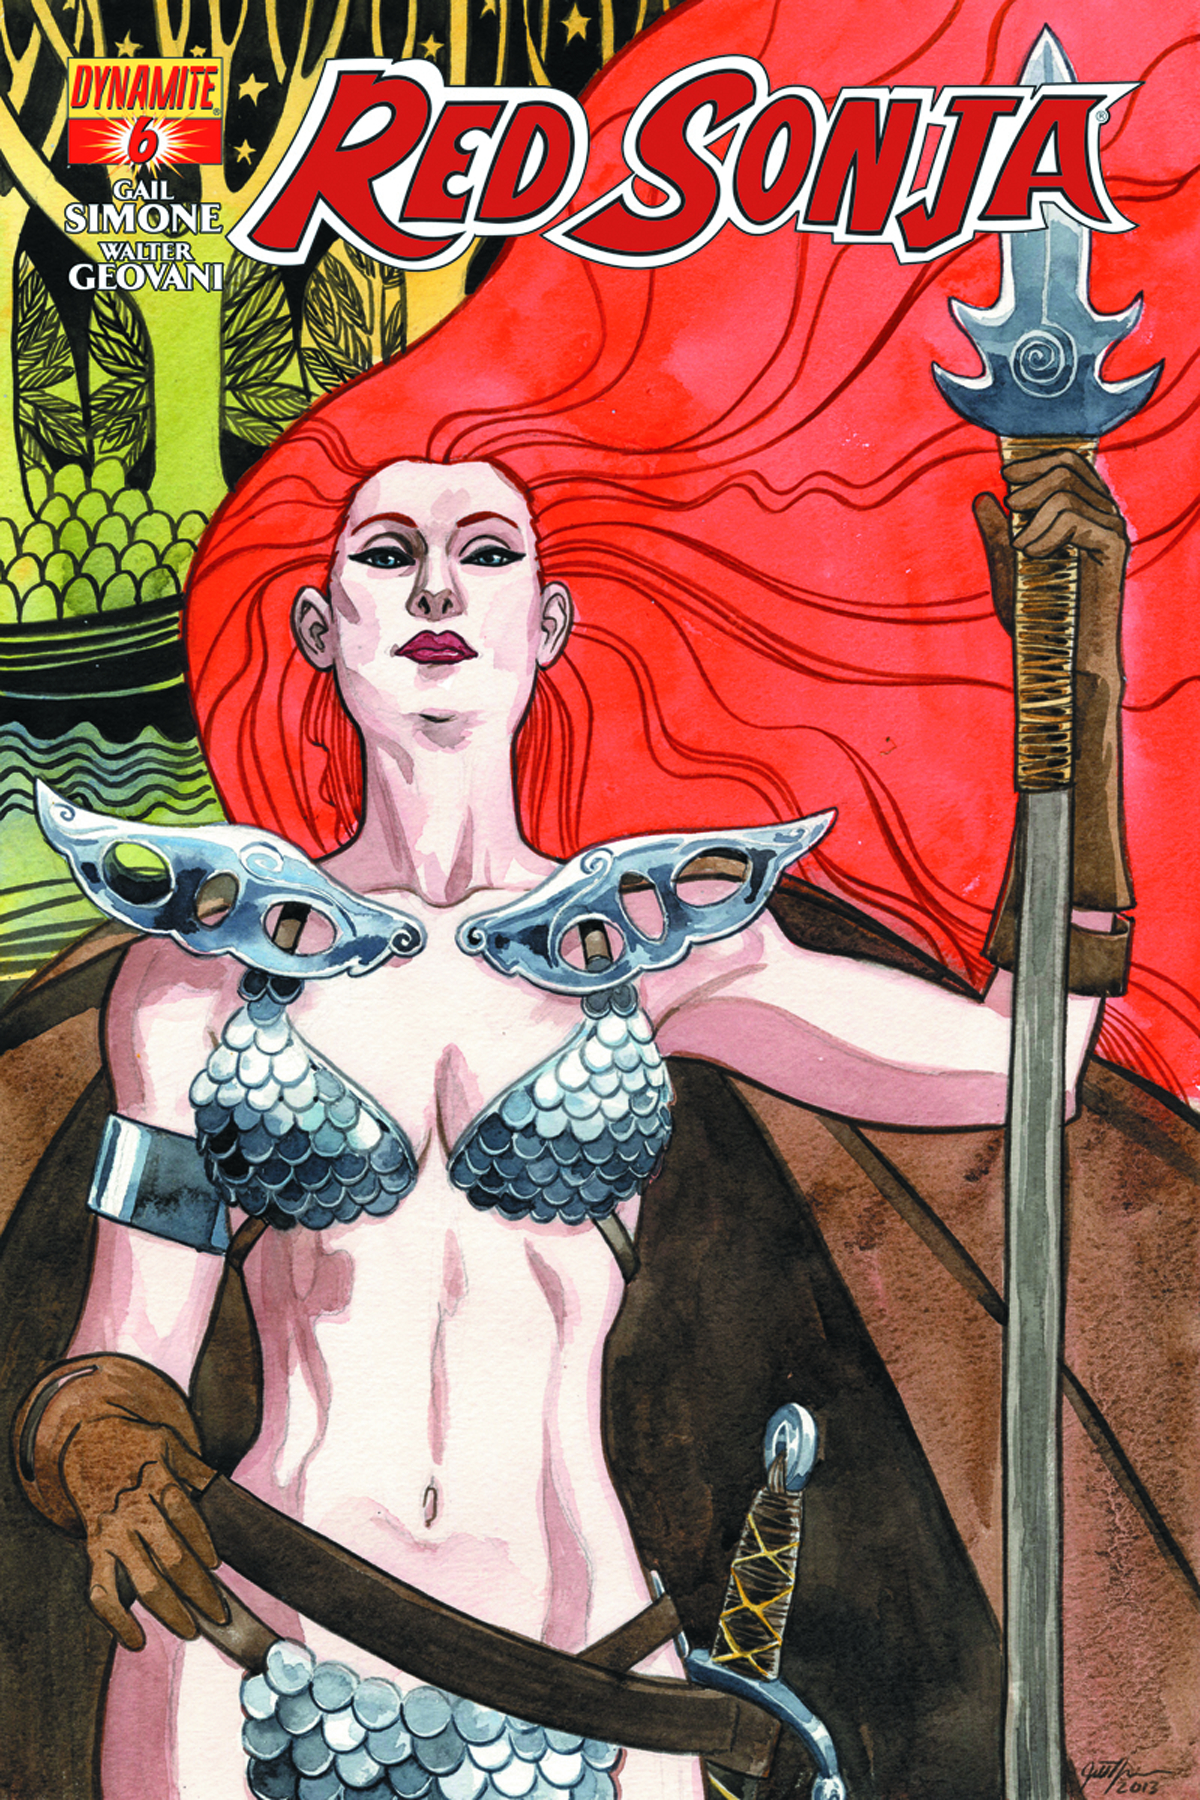 RED SONJA #6 THOMPSON CVR